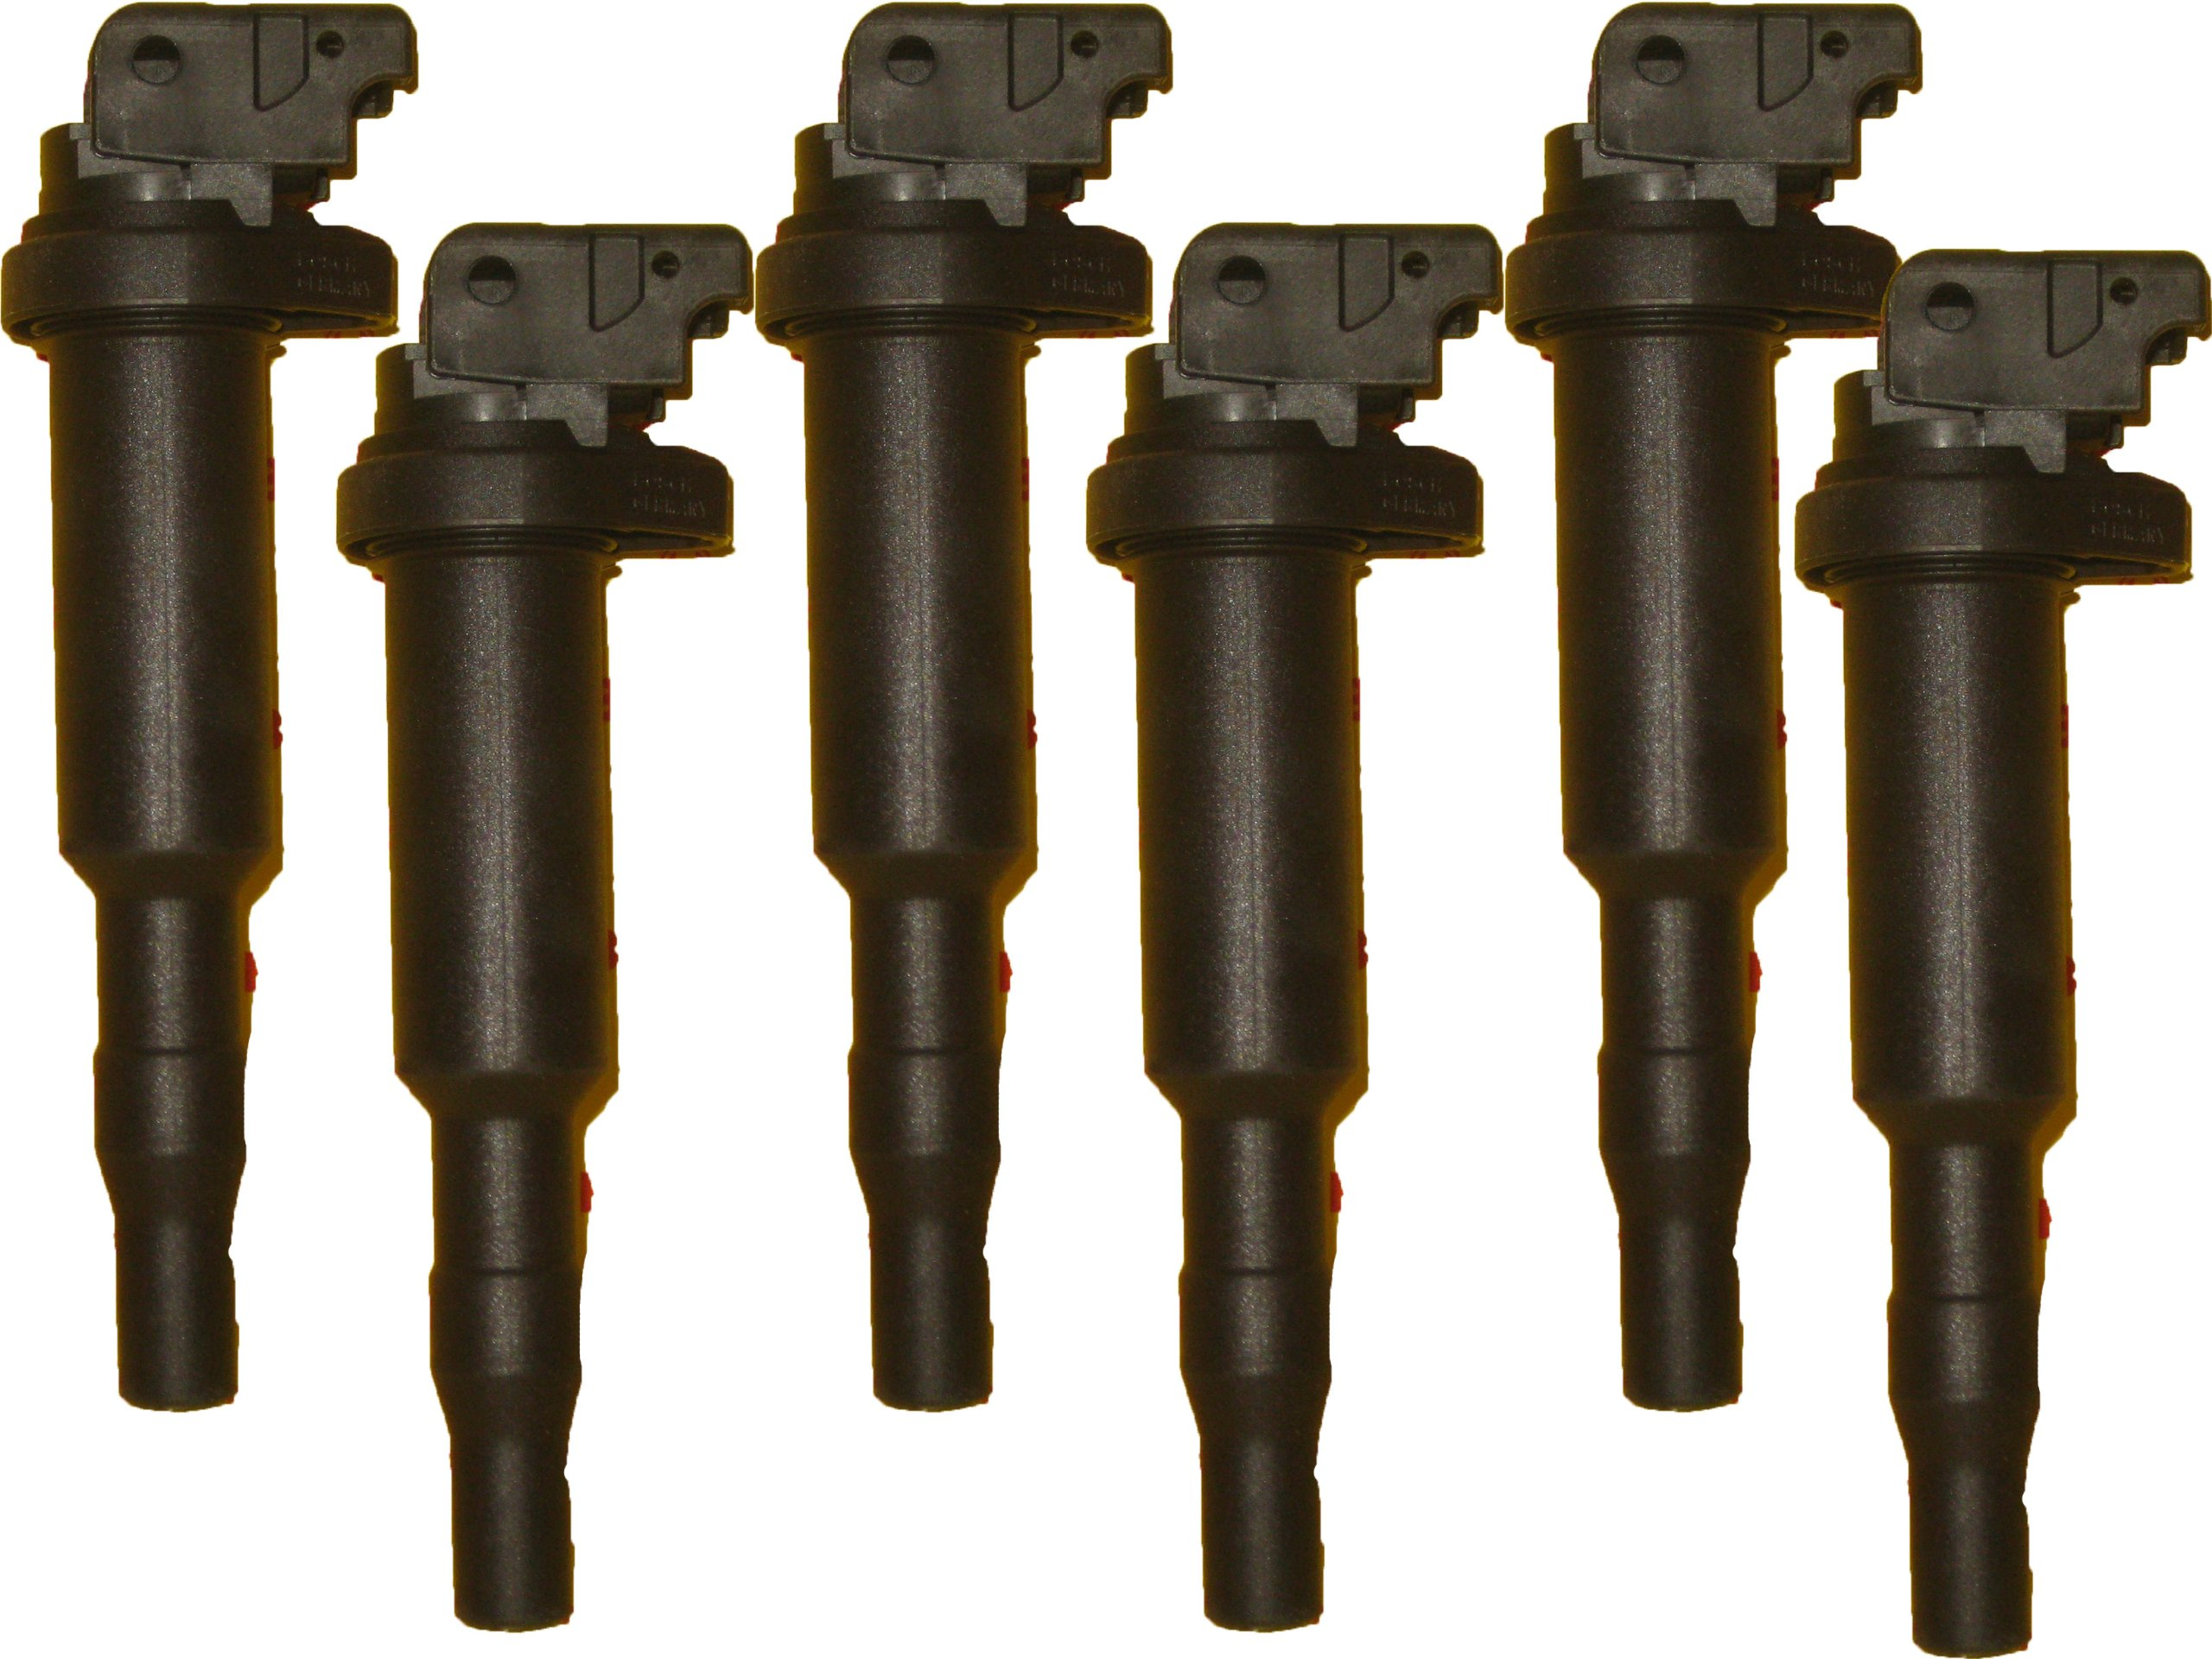 BMW Ignition Coil Bosch OEM 0470 / 12219 / 94937 (6pcs) by Bosch